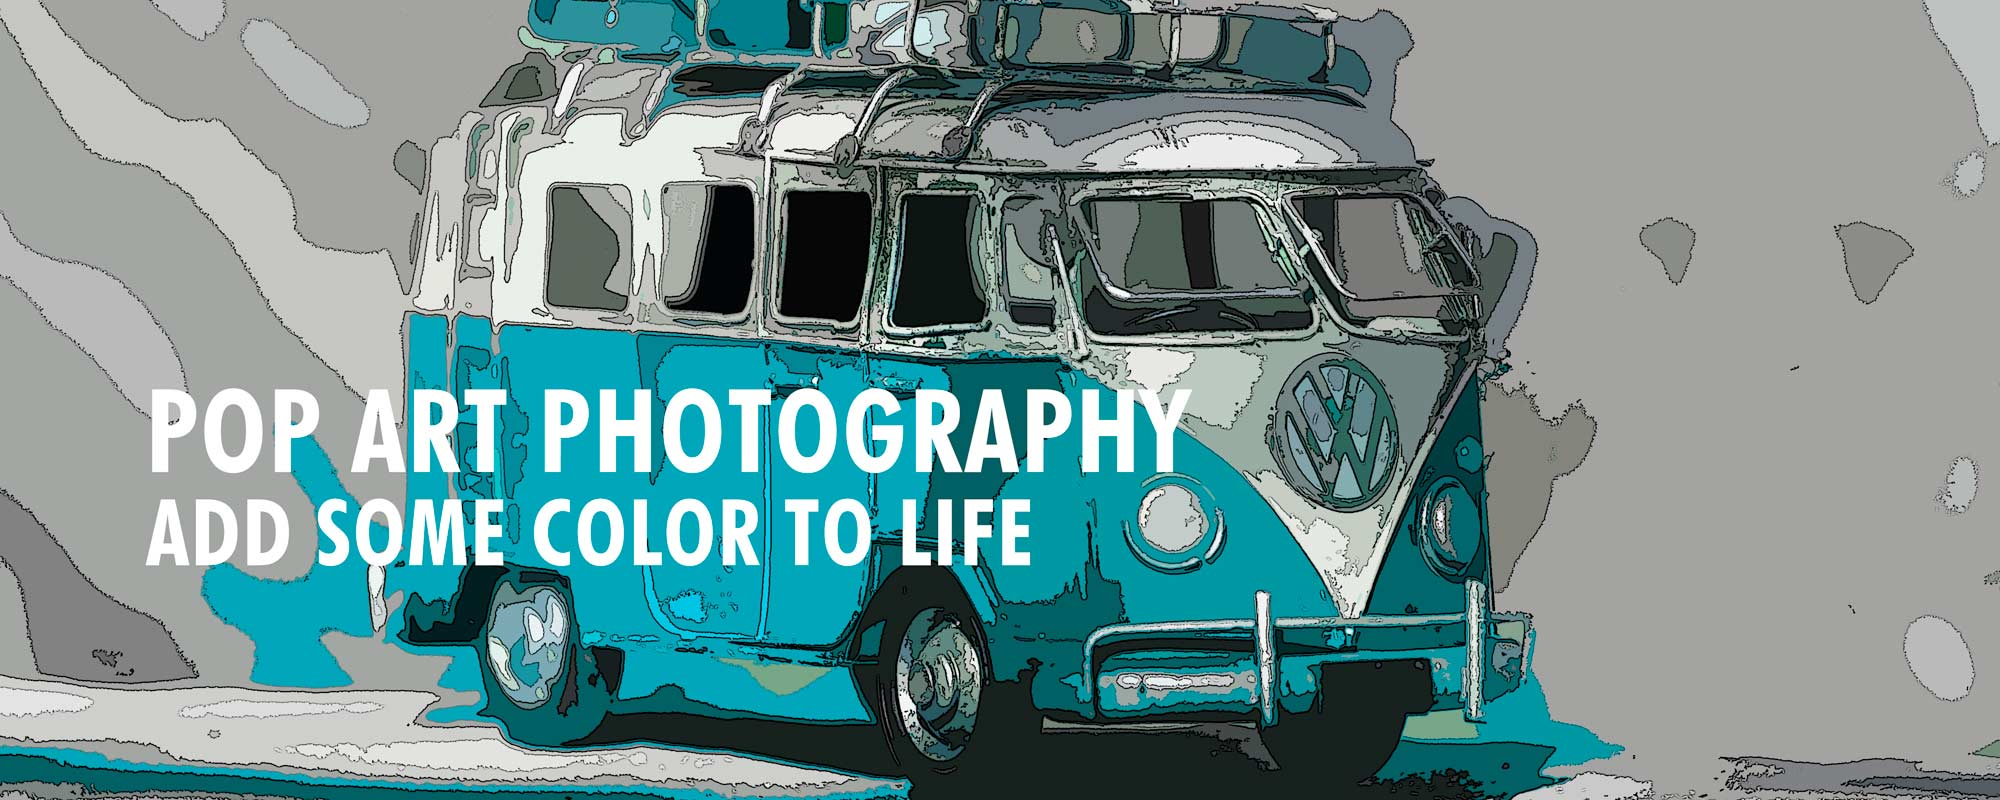 1965 VW Bus -- pop art photography